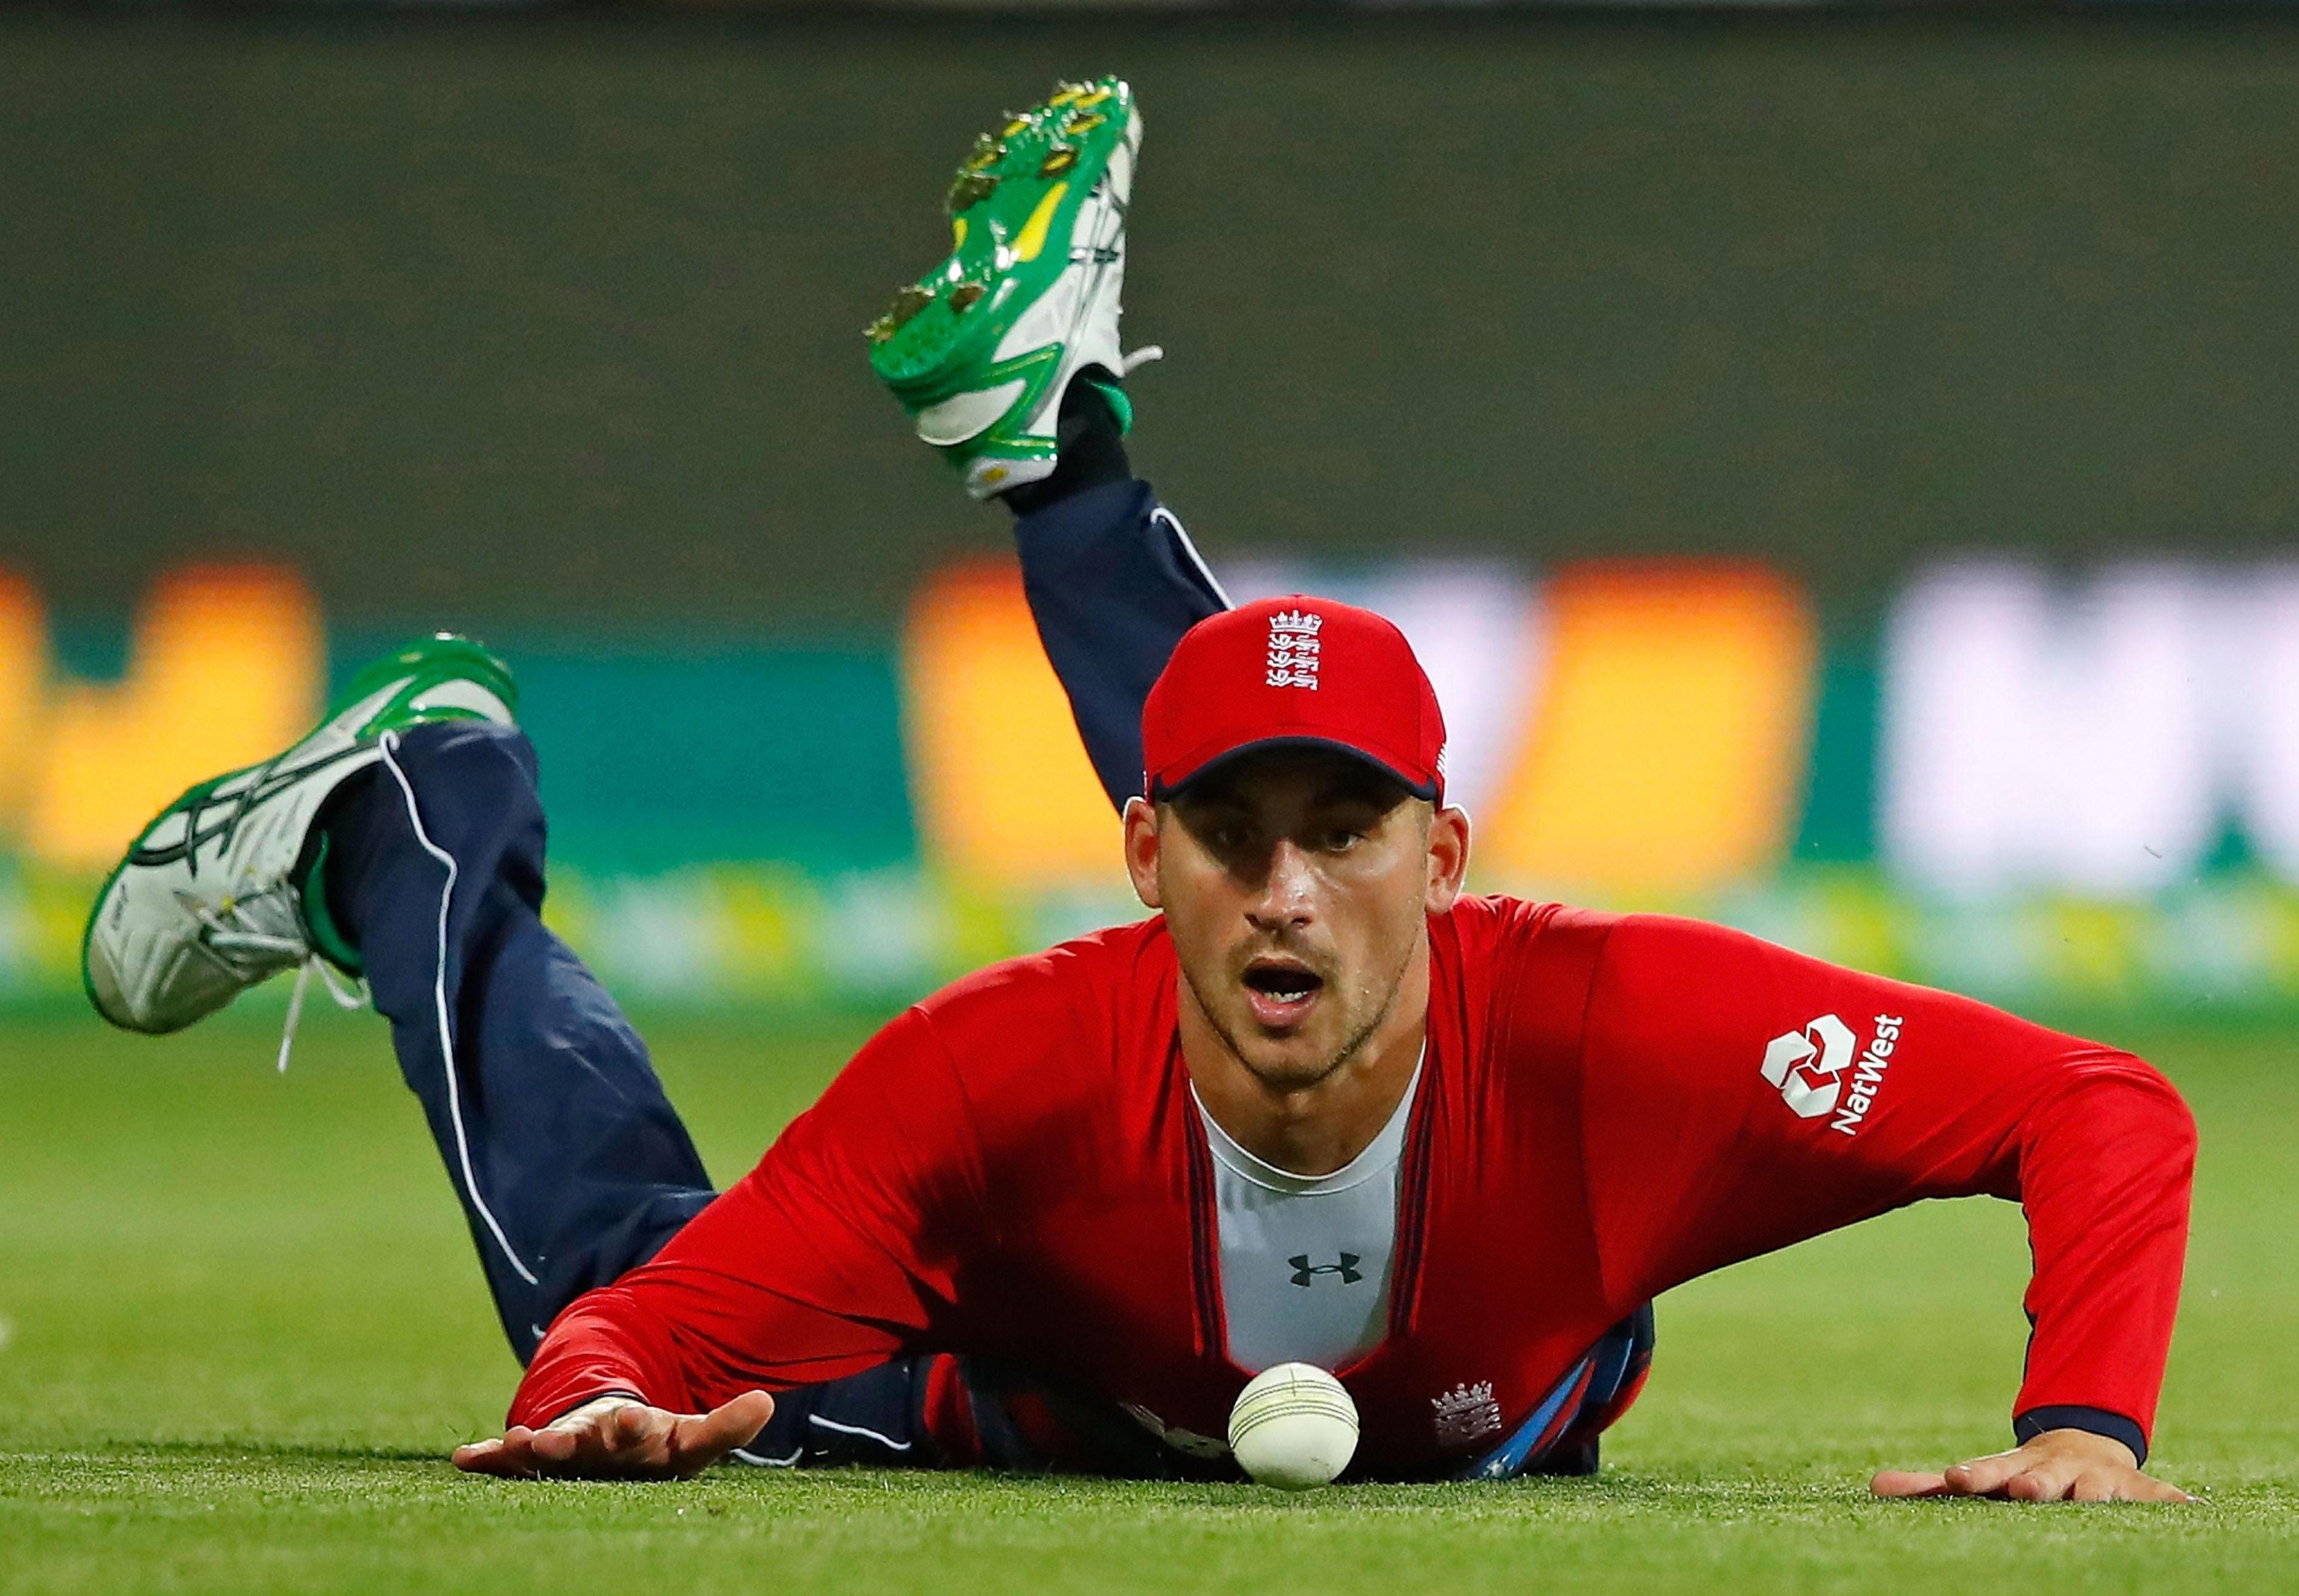 England toiled in the field as Glenn Maxwell fired the ball around the ground